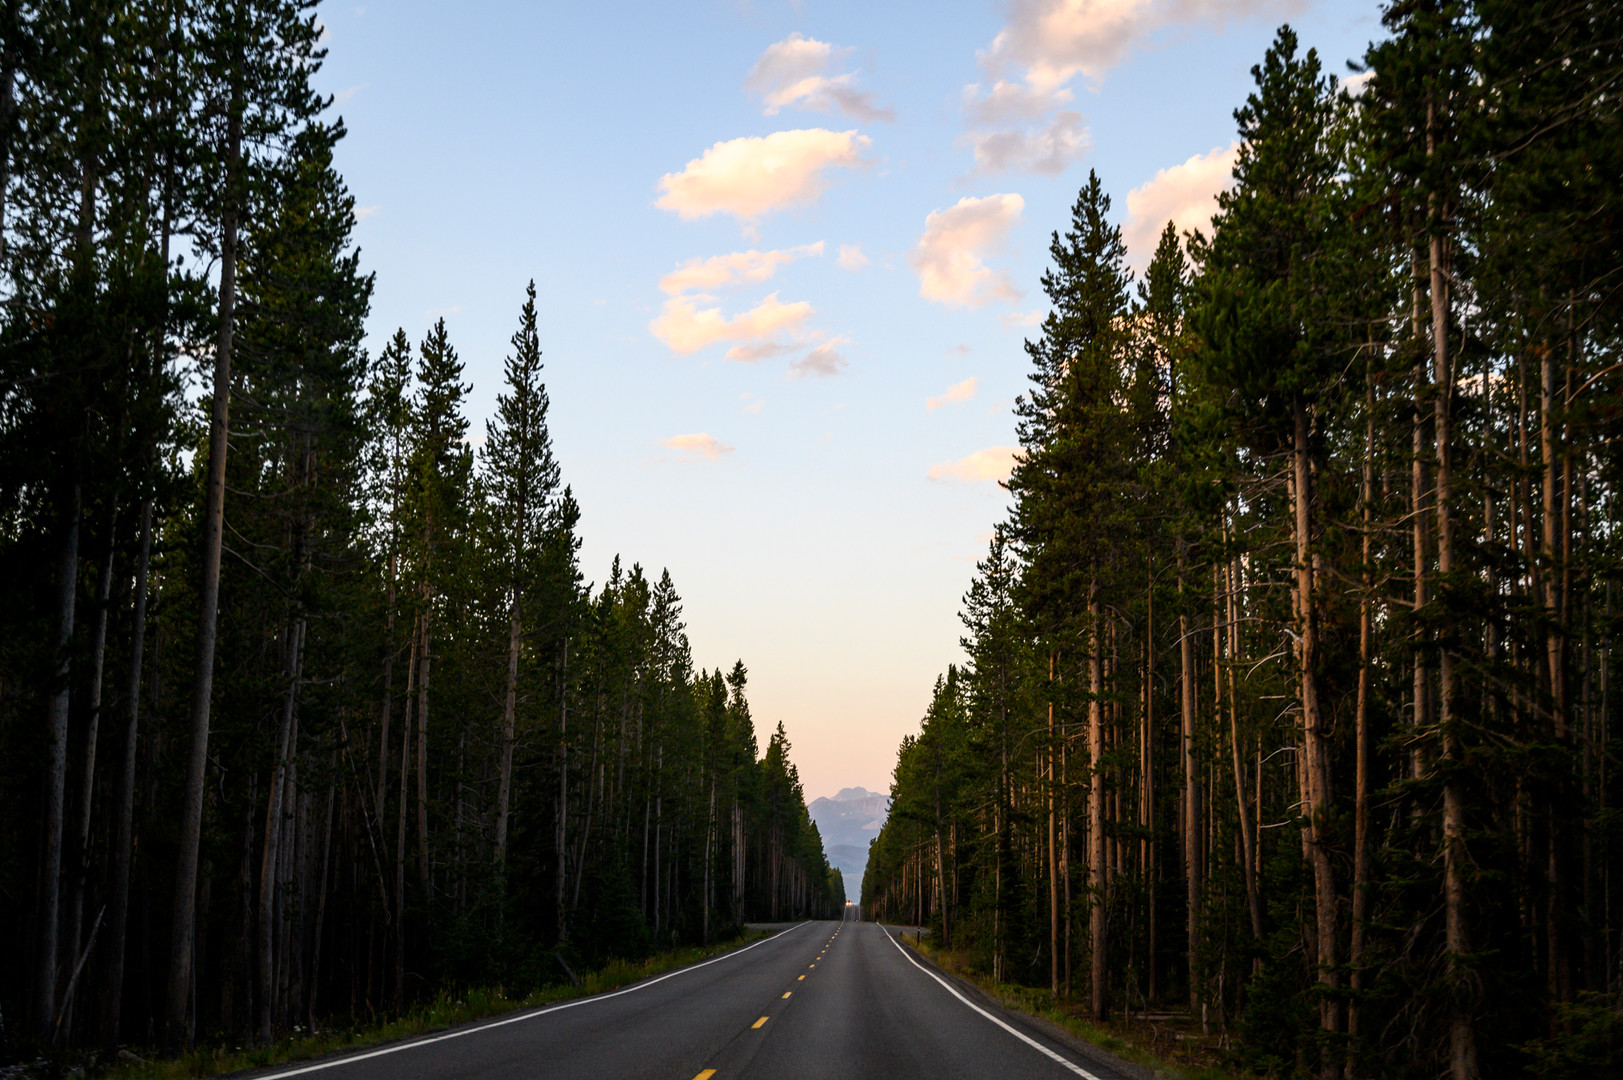 Road to Grand Teton National Park, Wyoming